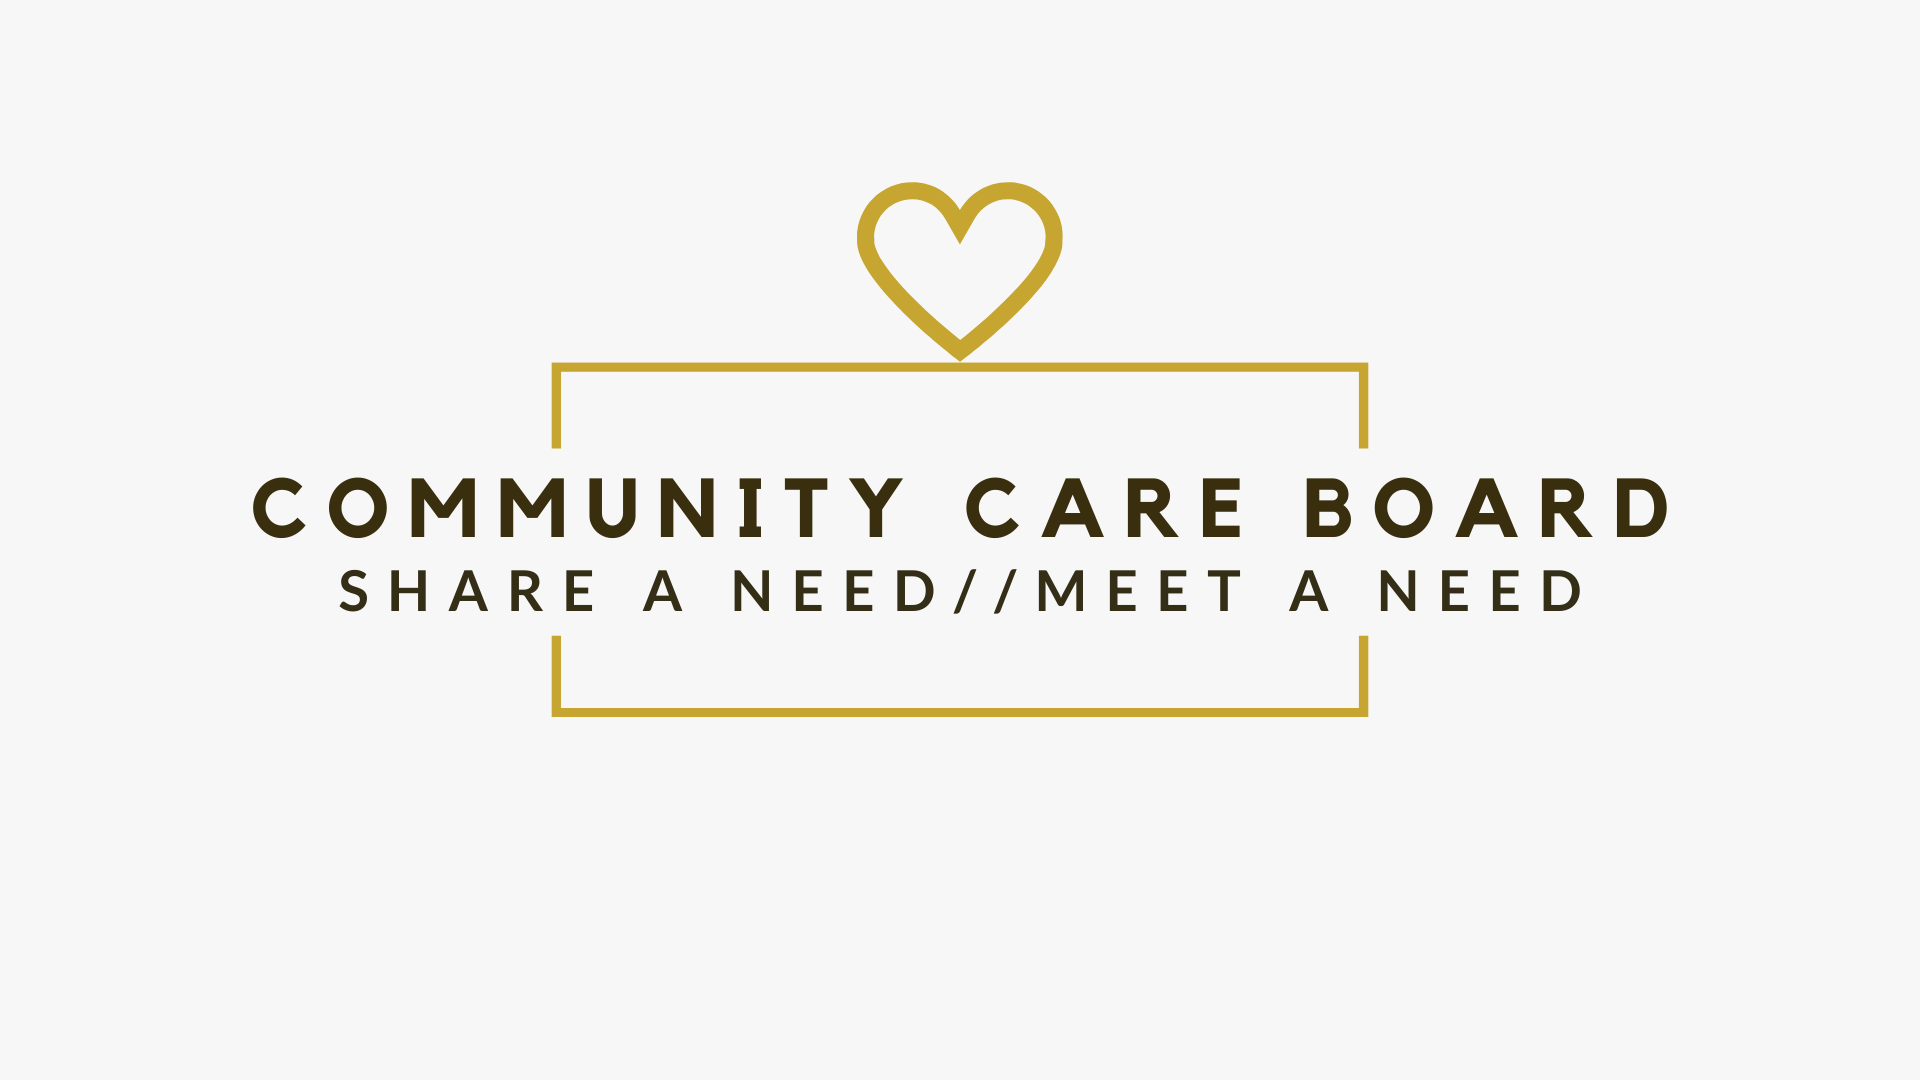 Community Care Board image